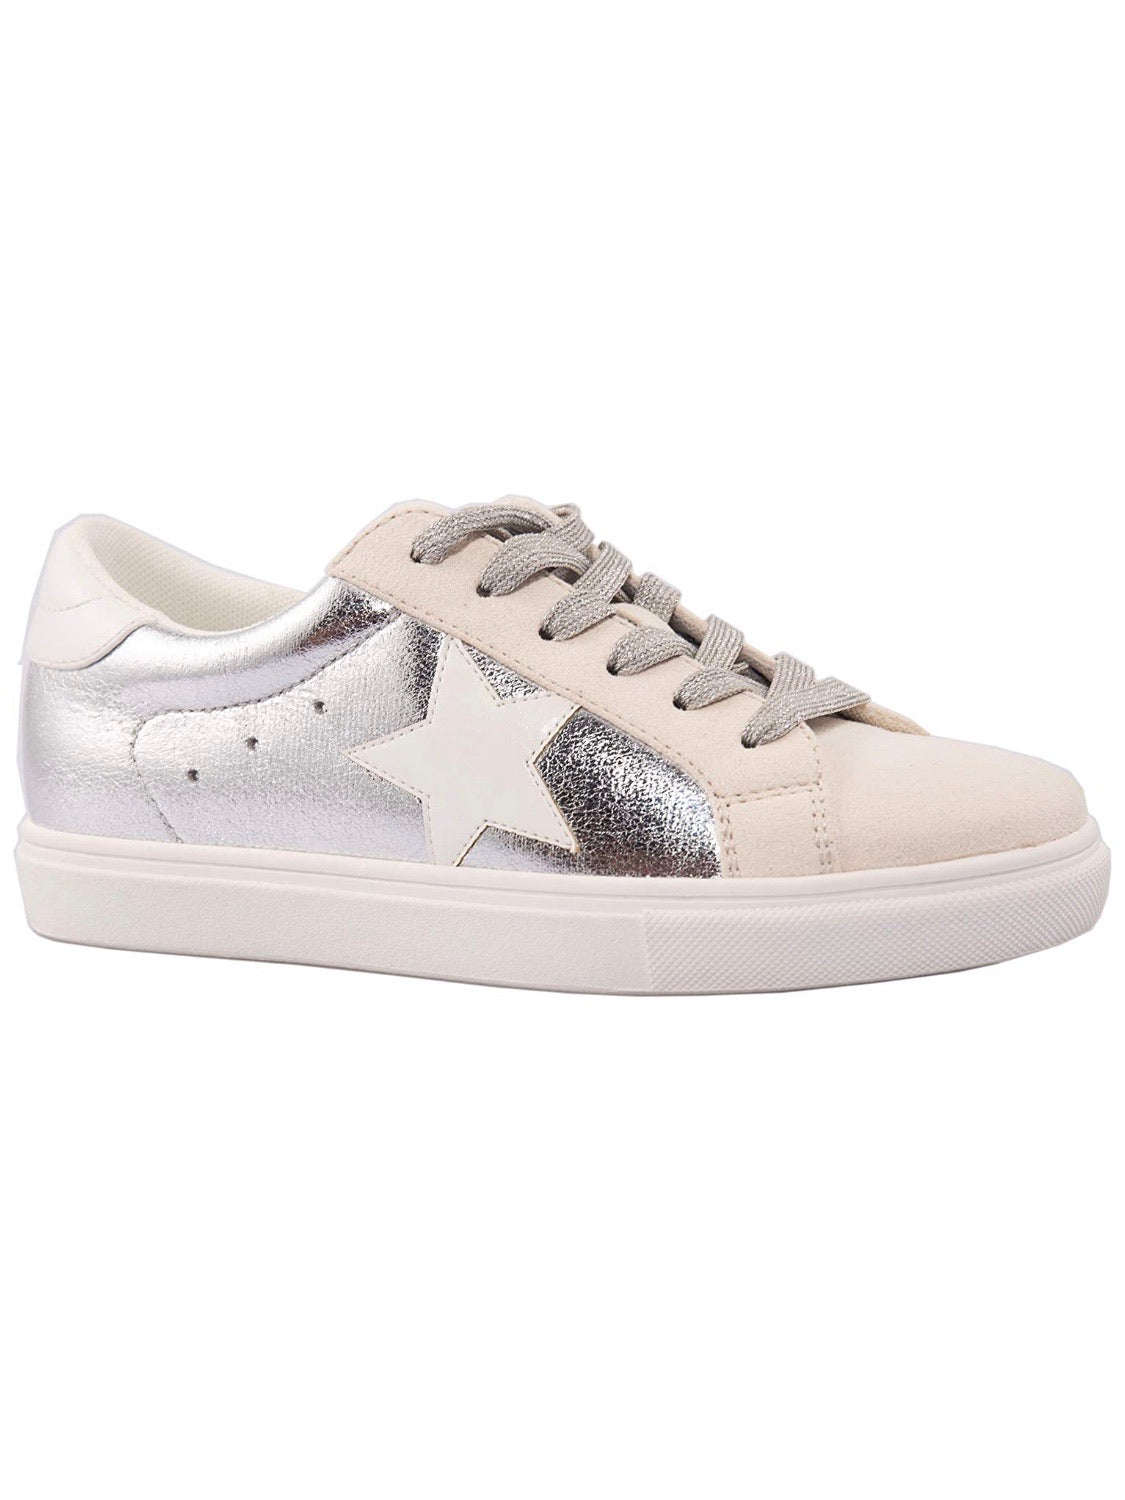 White Star Silver Sneakers